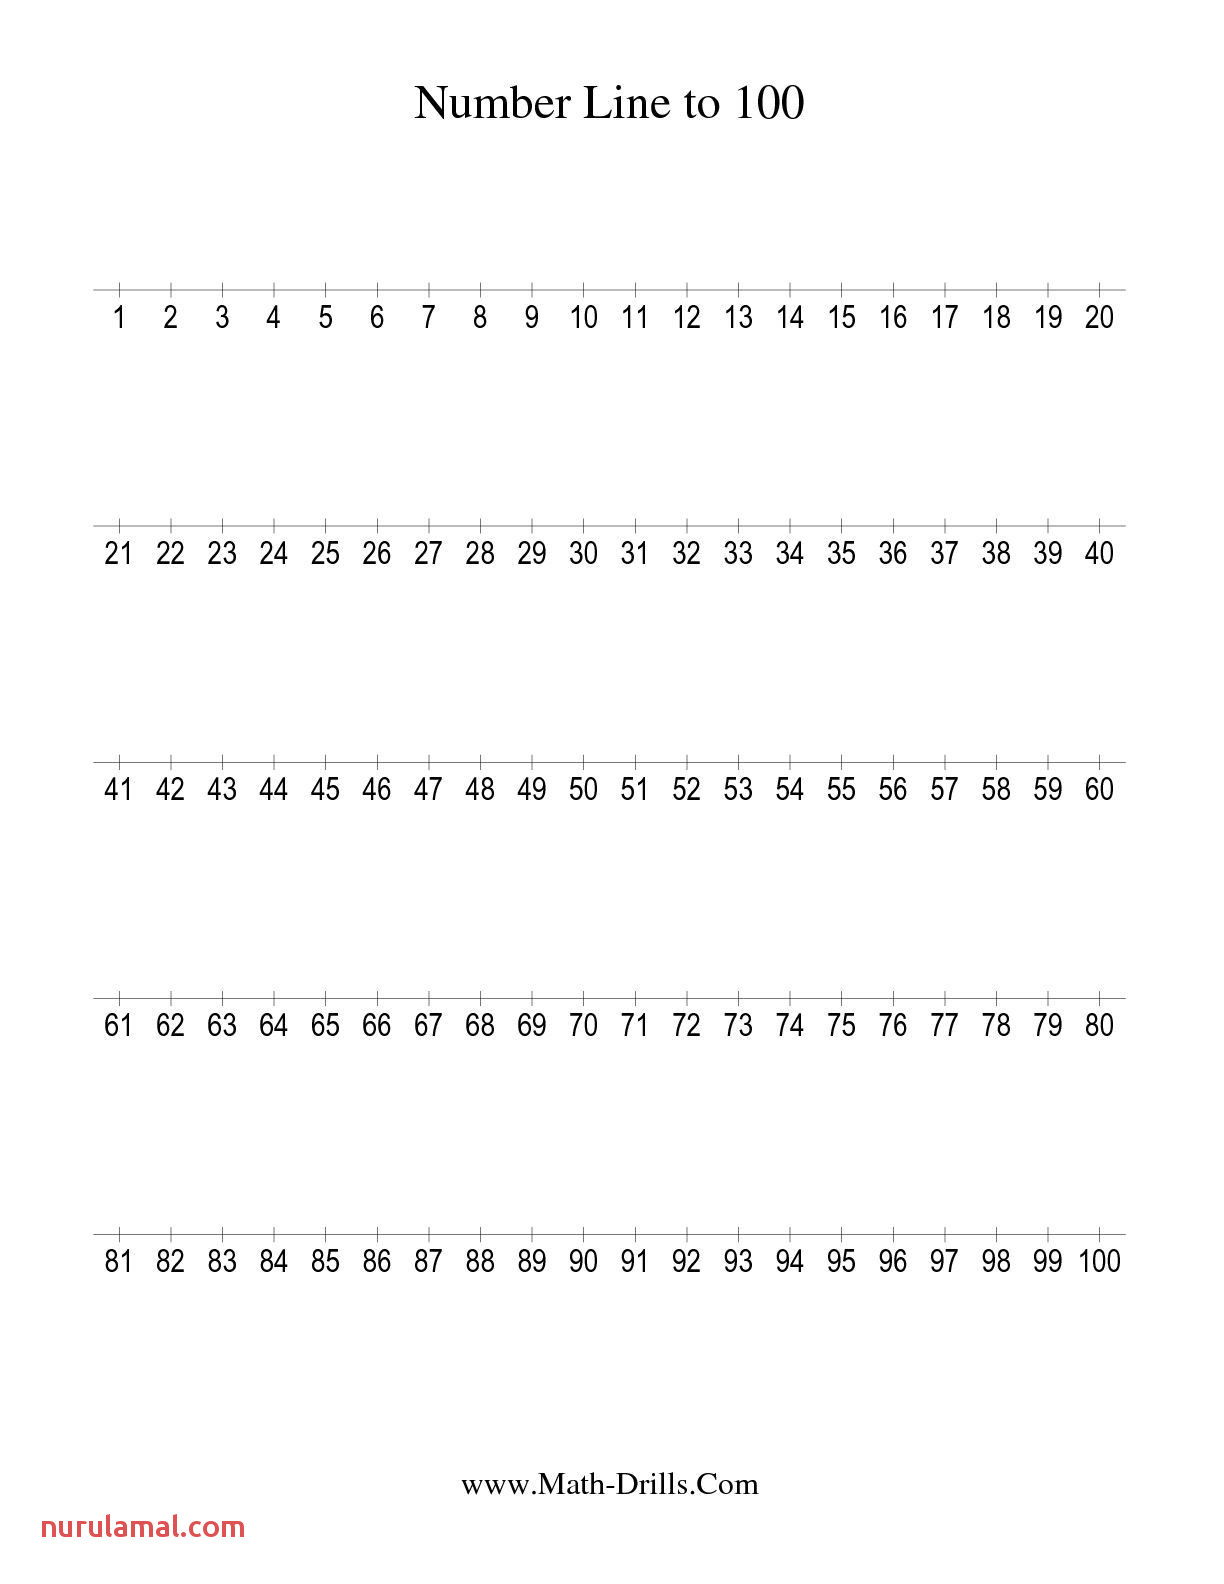 The Number Line to 100 Counting by 1 Math Worksheet From the